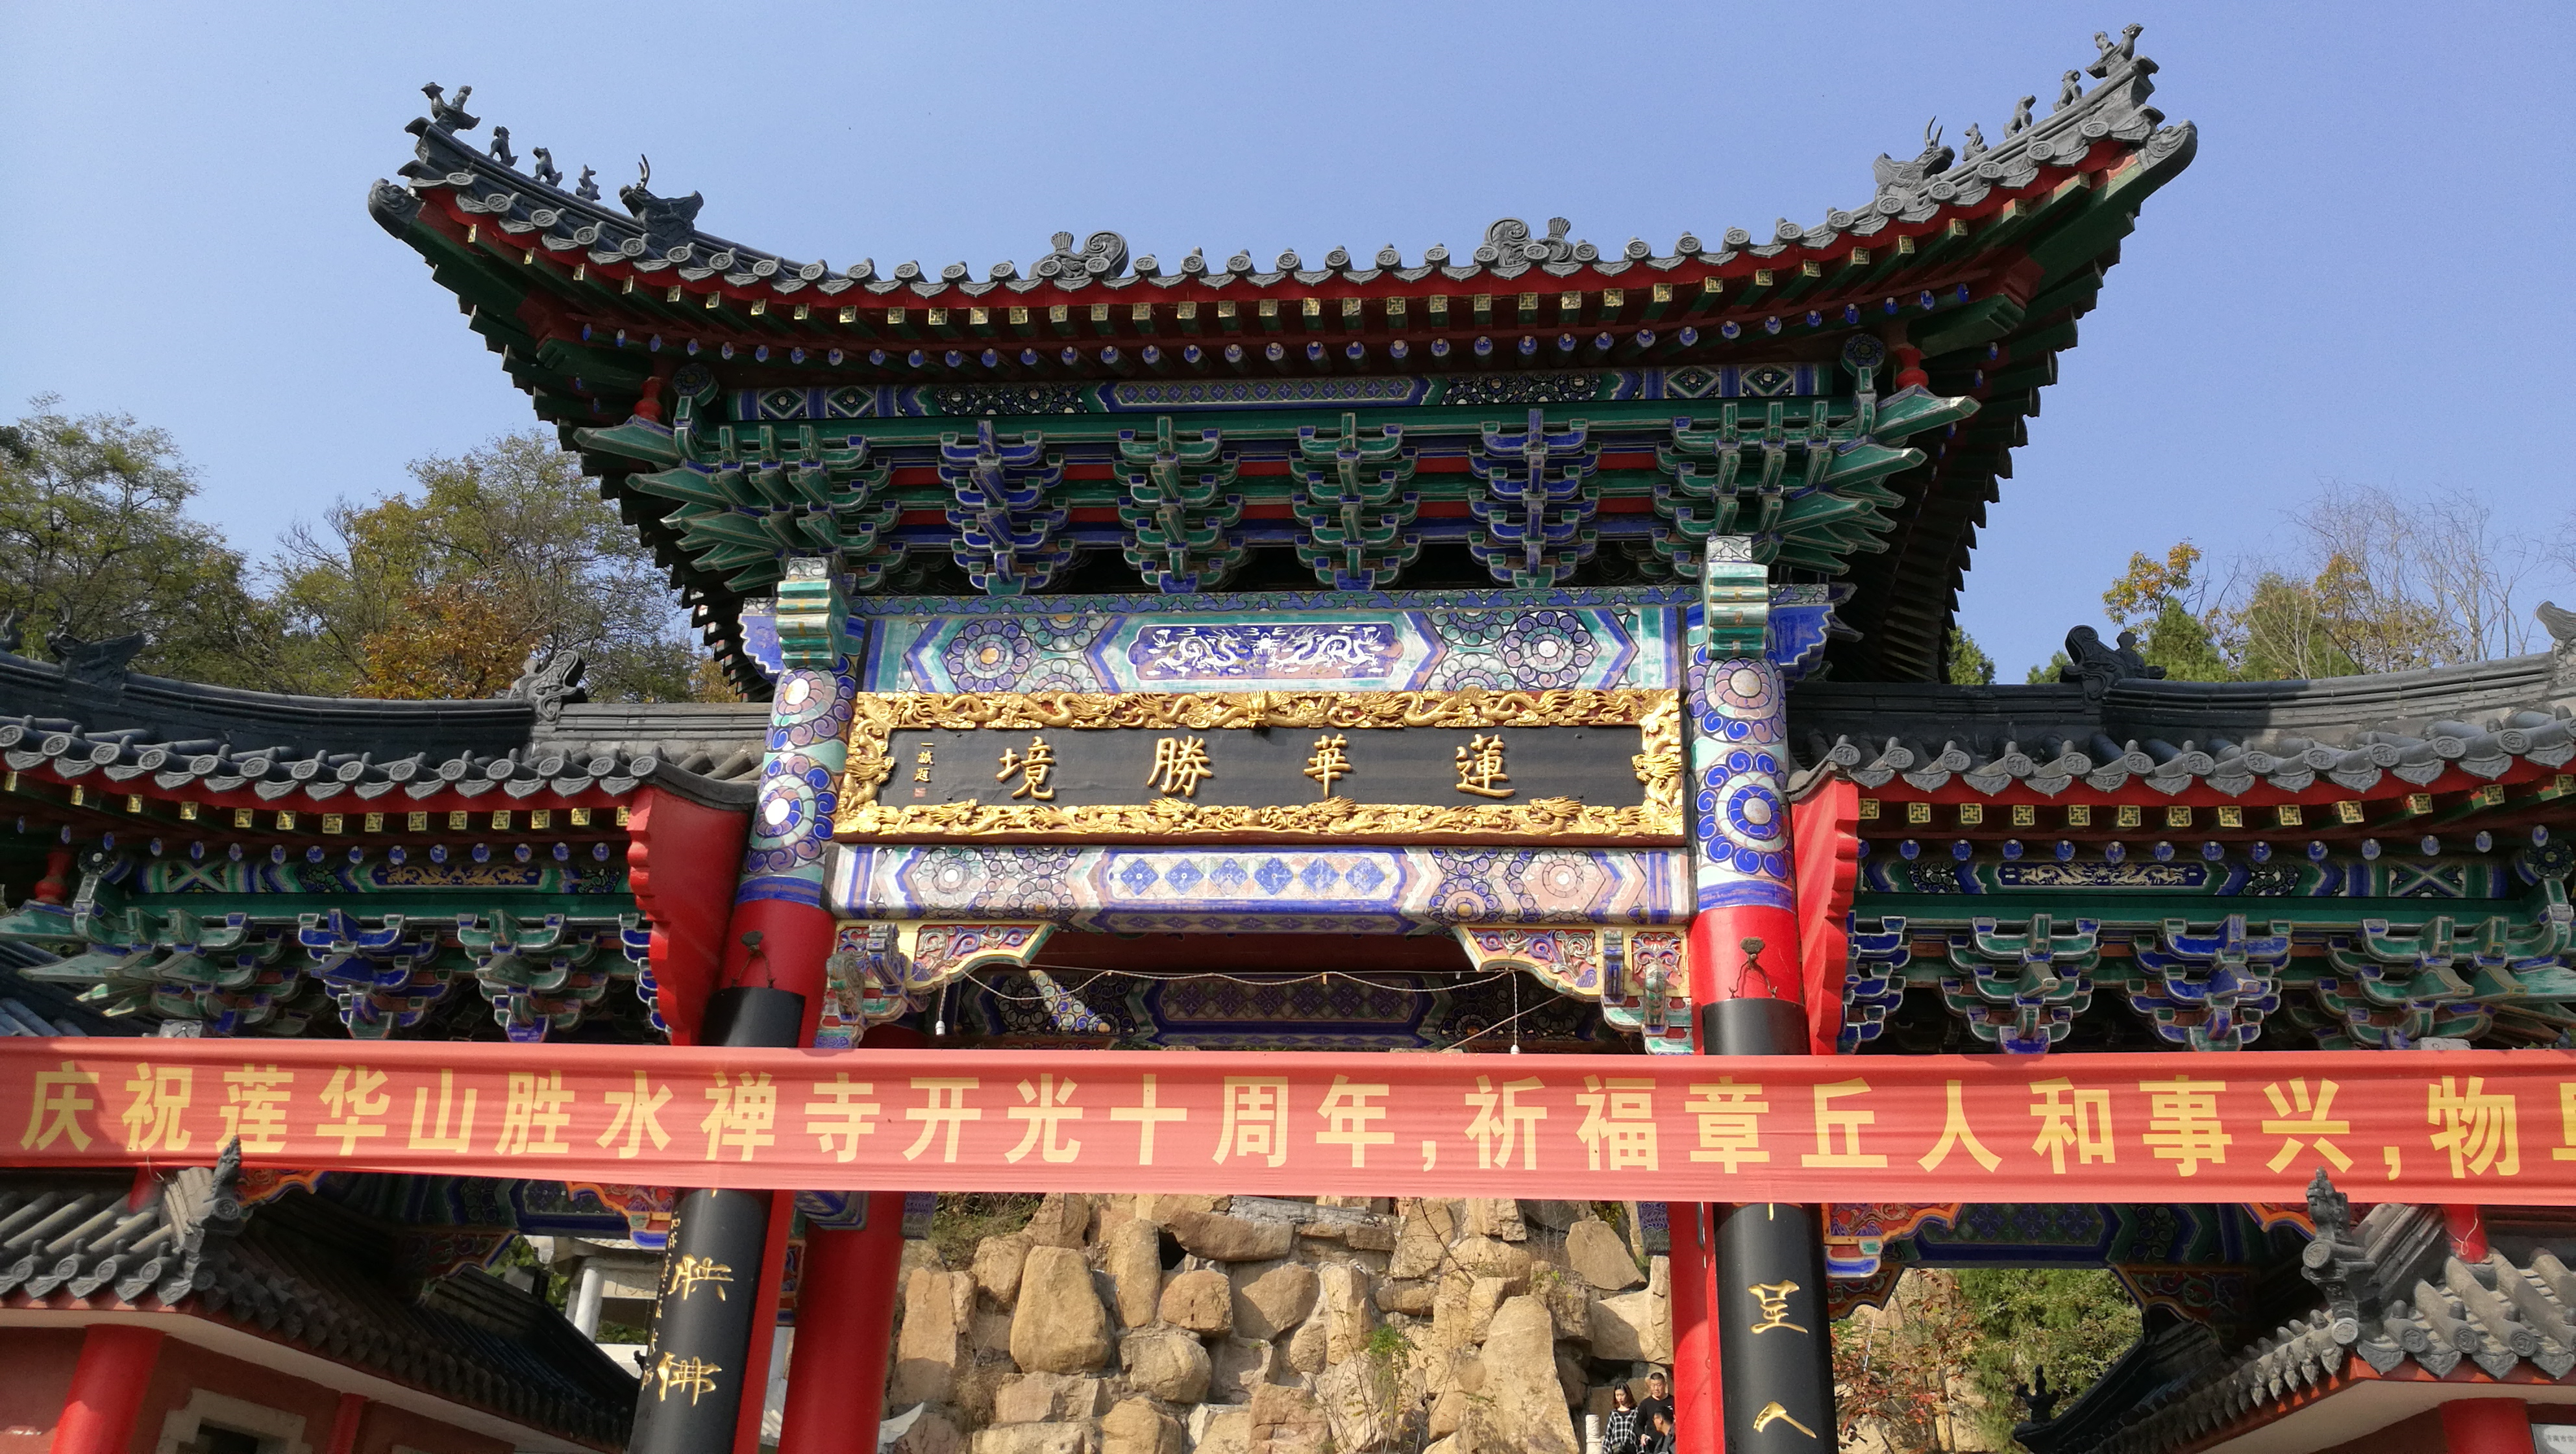 Outward Bound in the lianhua mountain in jinan